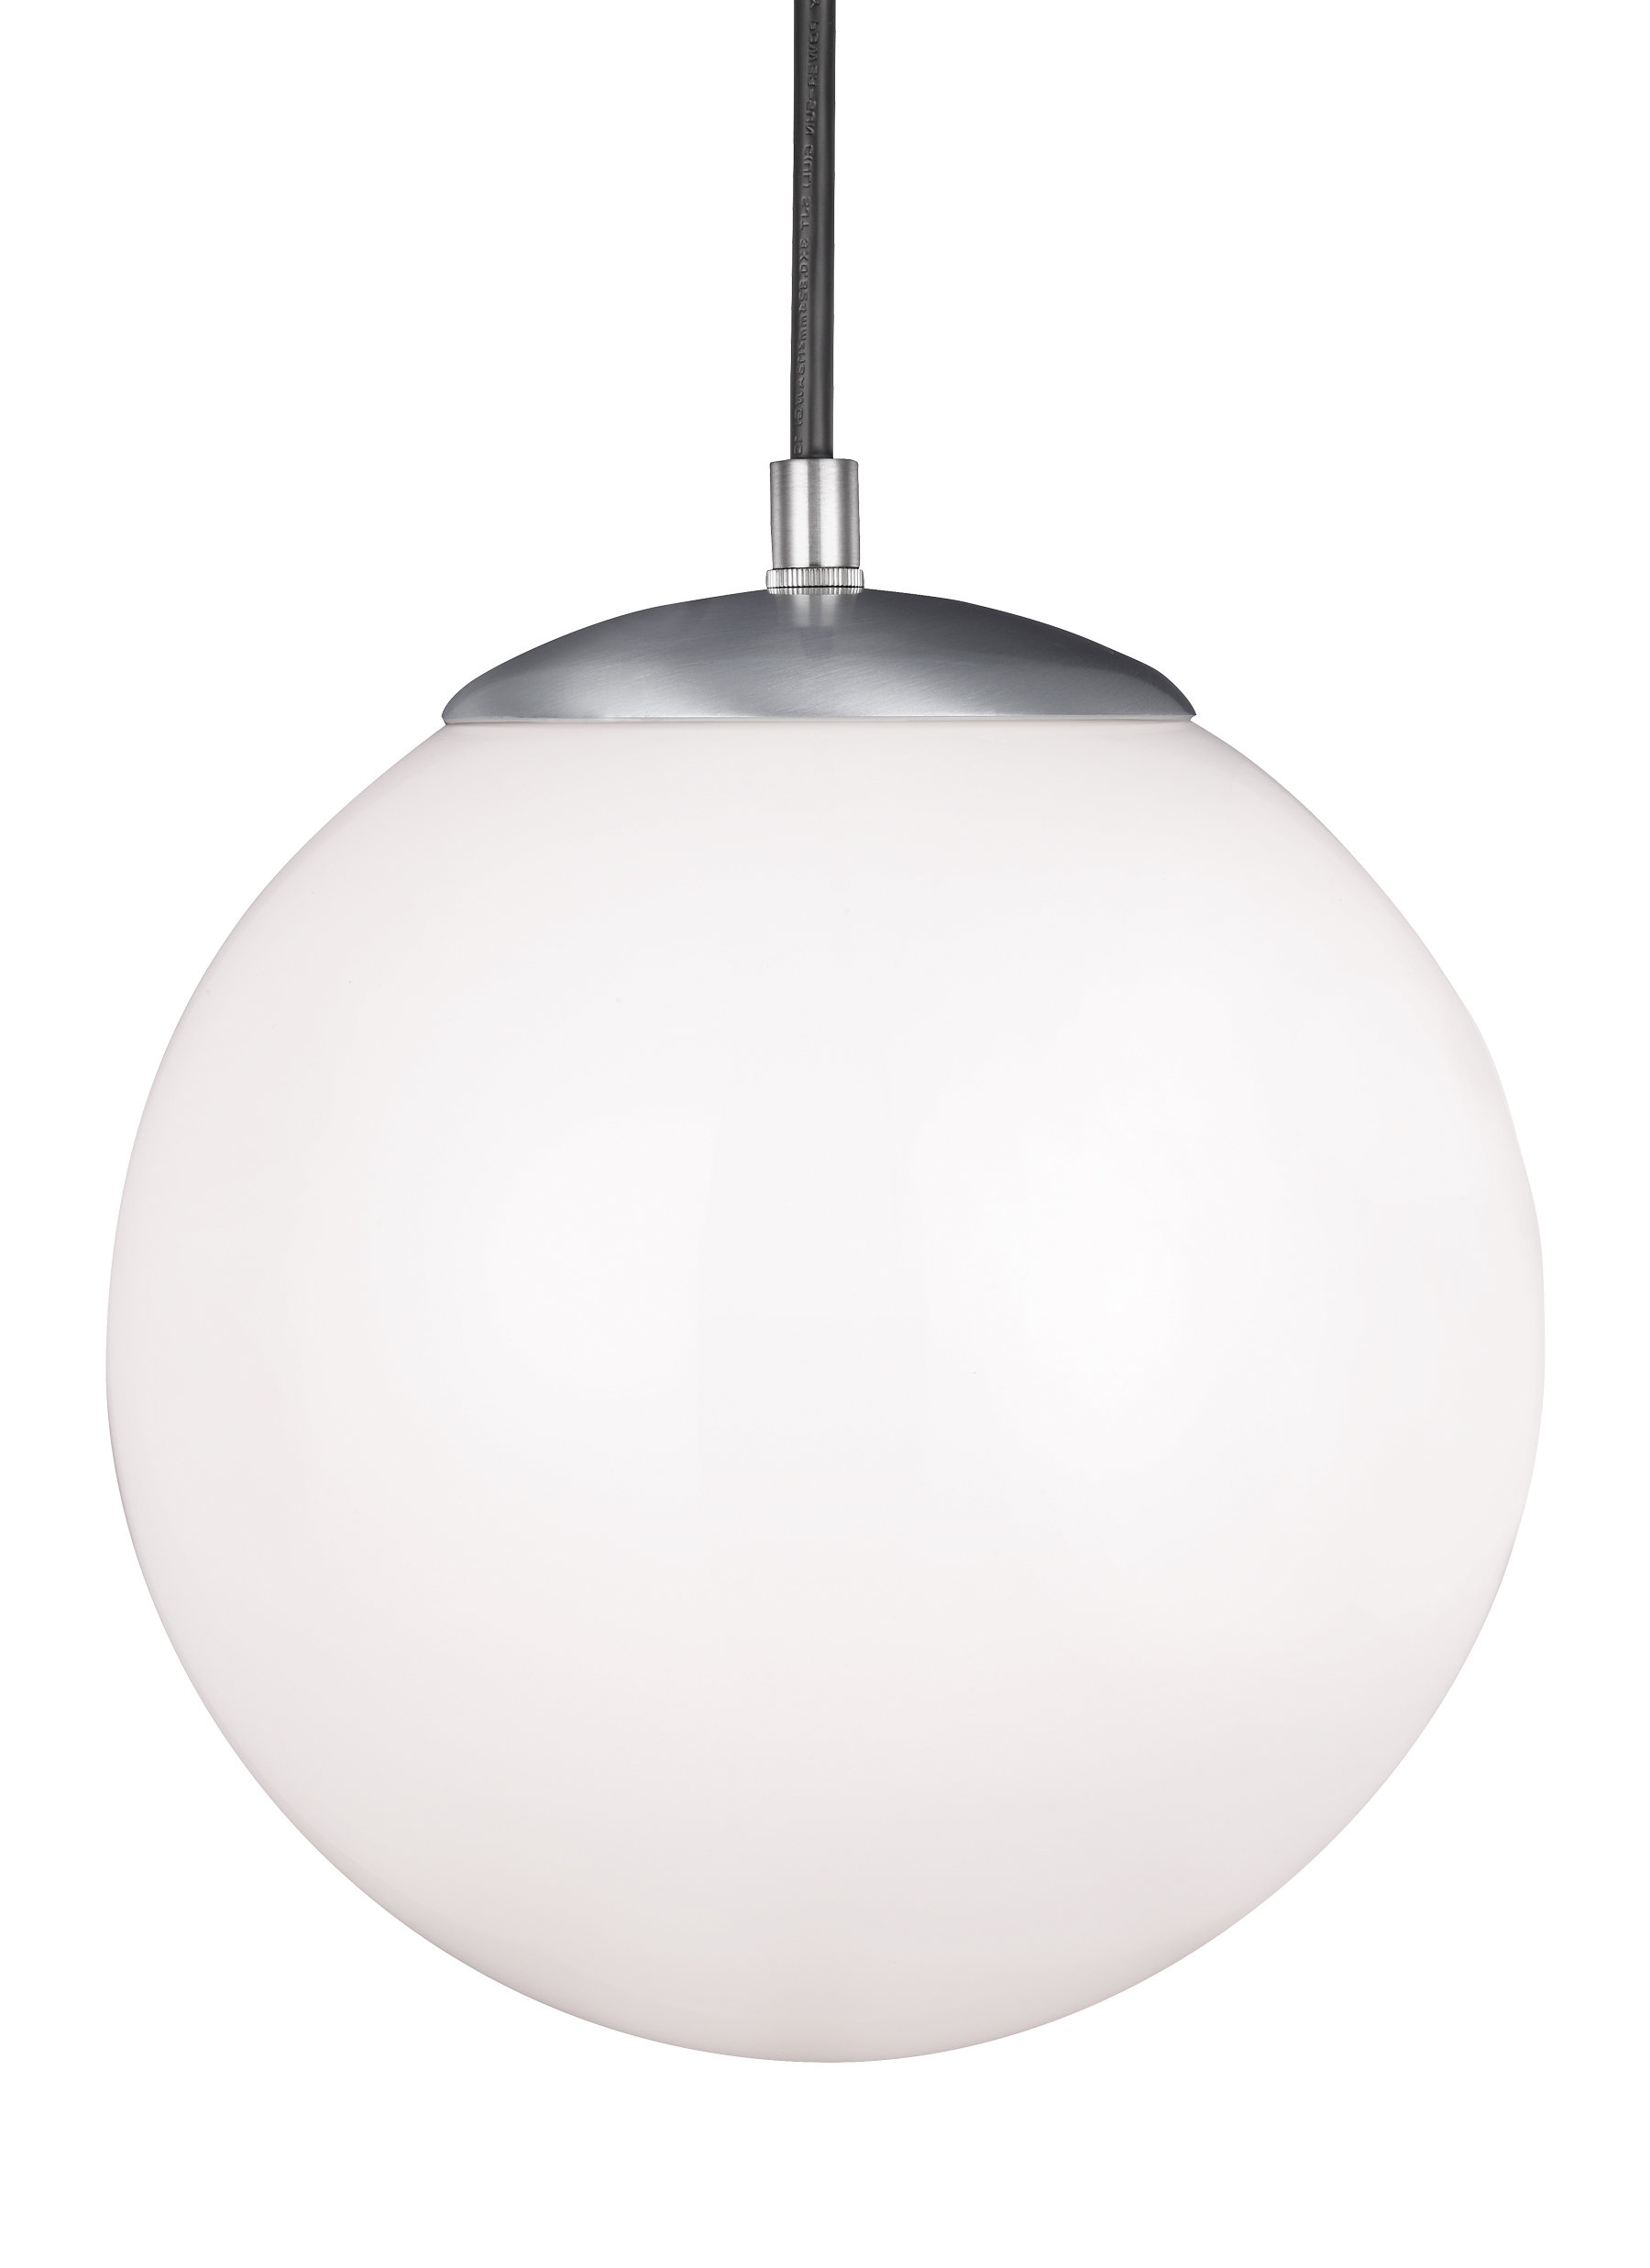 Best And Newest Quinn 1 Light Led Globe Pendant Pertaining To Bautista 1 Light Single Globe Pendants (View 11 of 25)